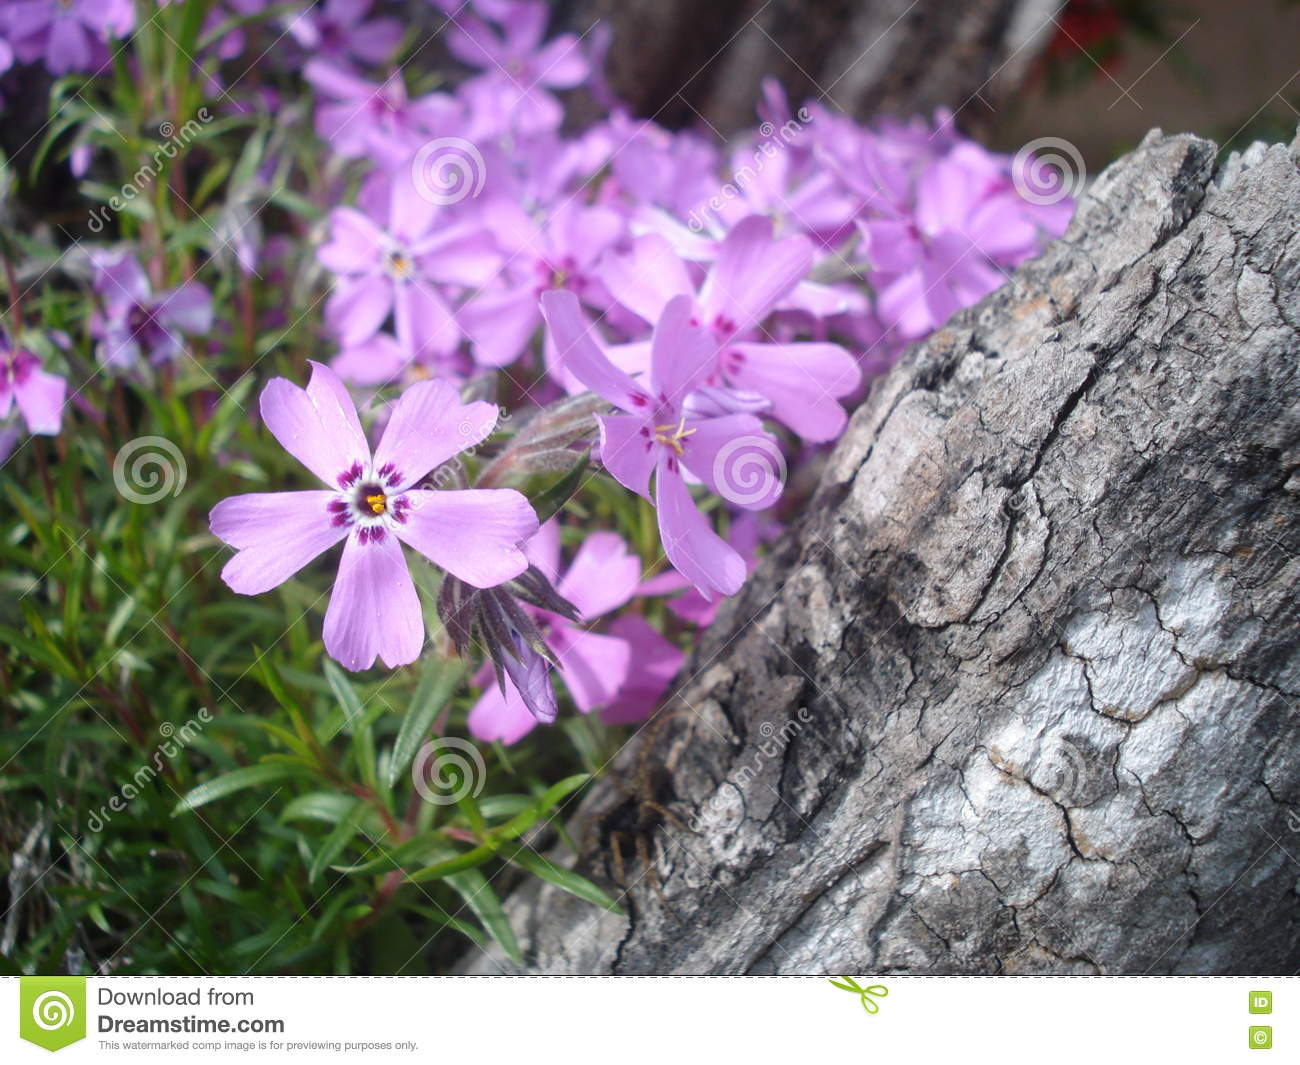 Pink Moss Phlox Flowers In The Garden Stock Photo Image Of Moss